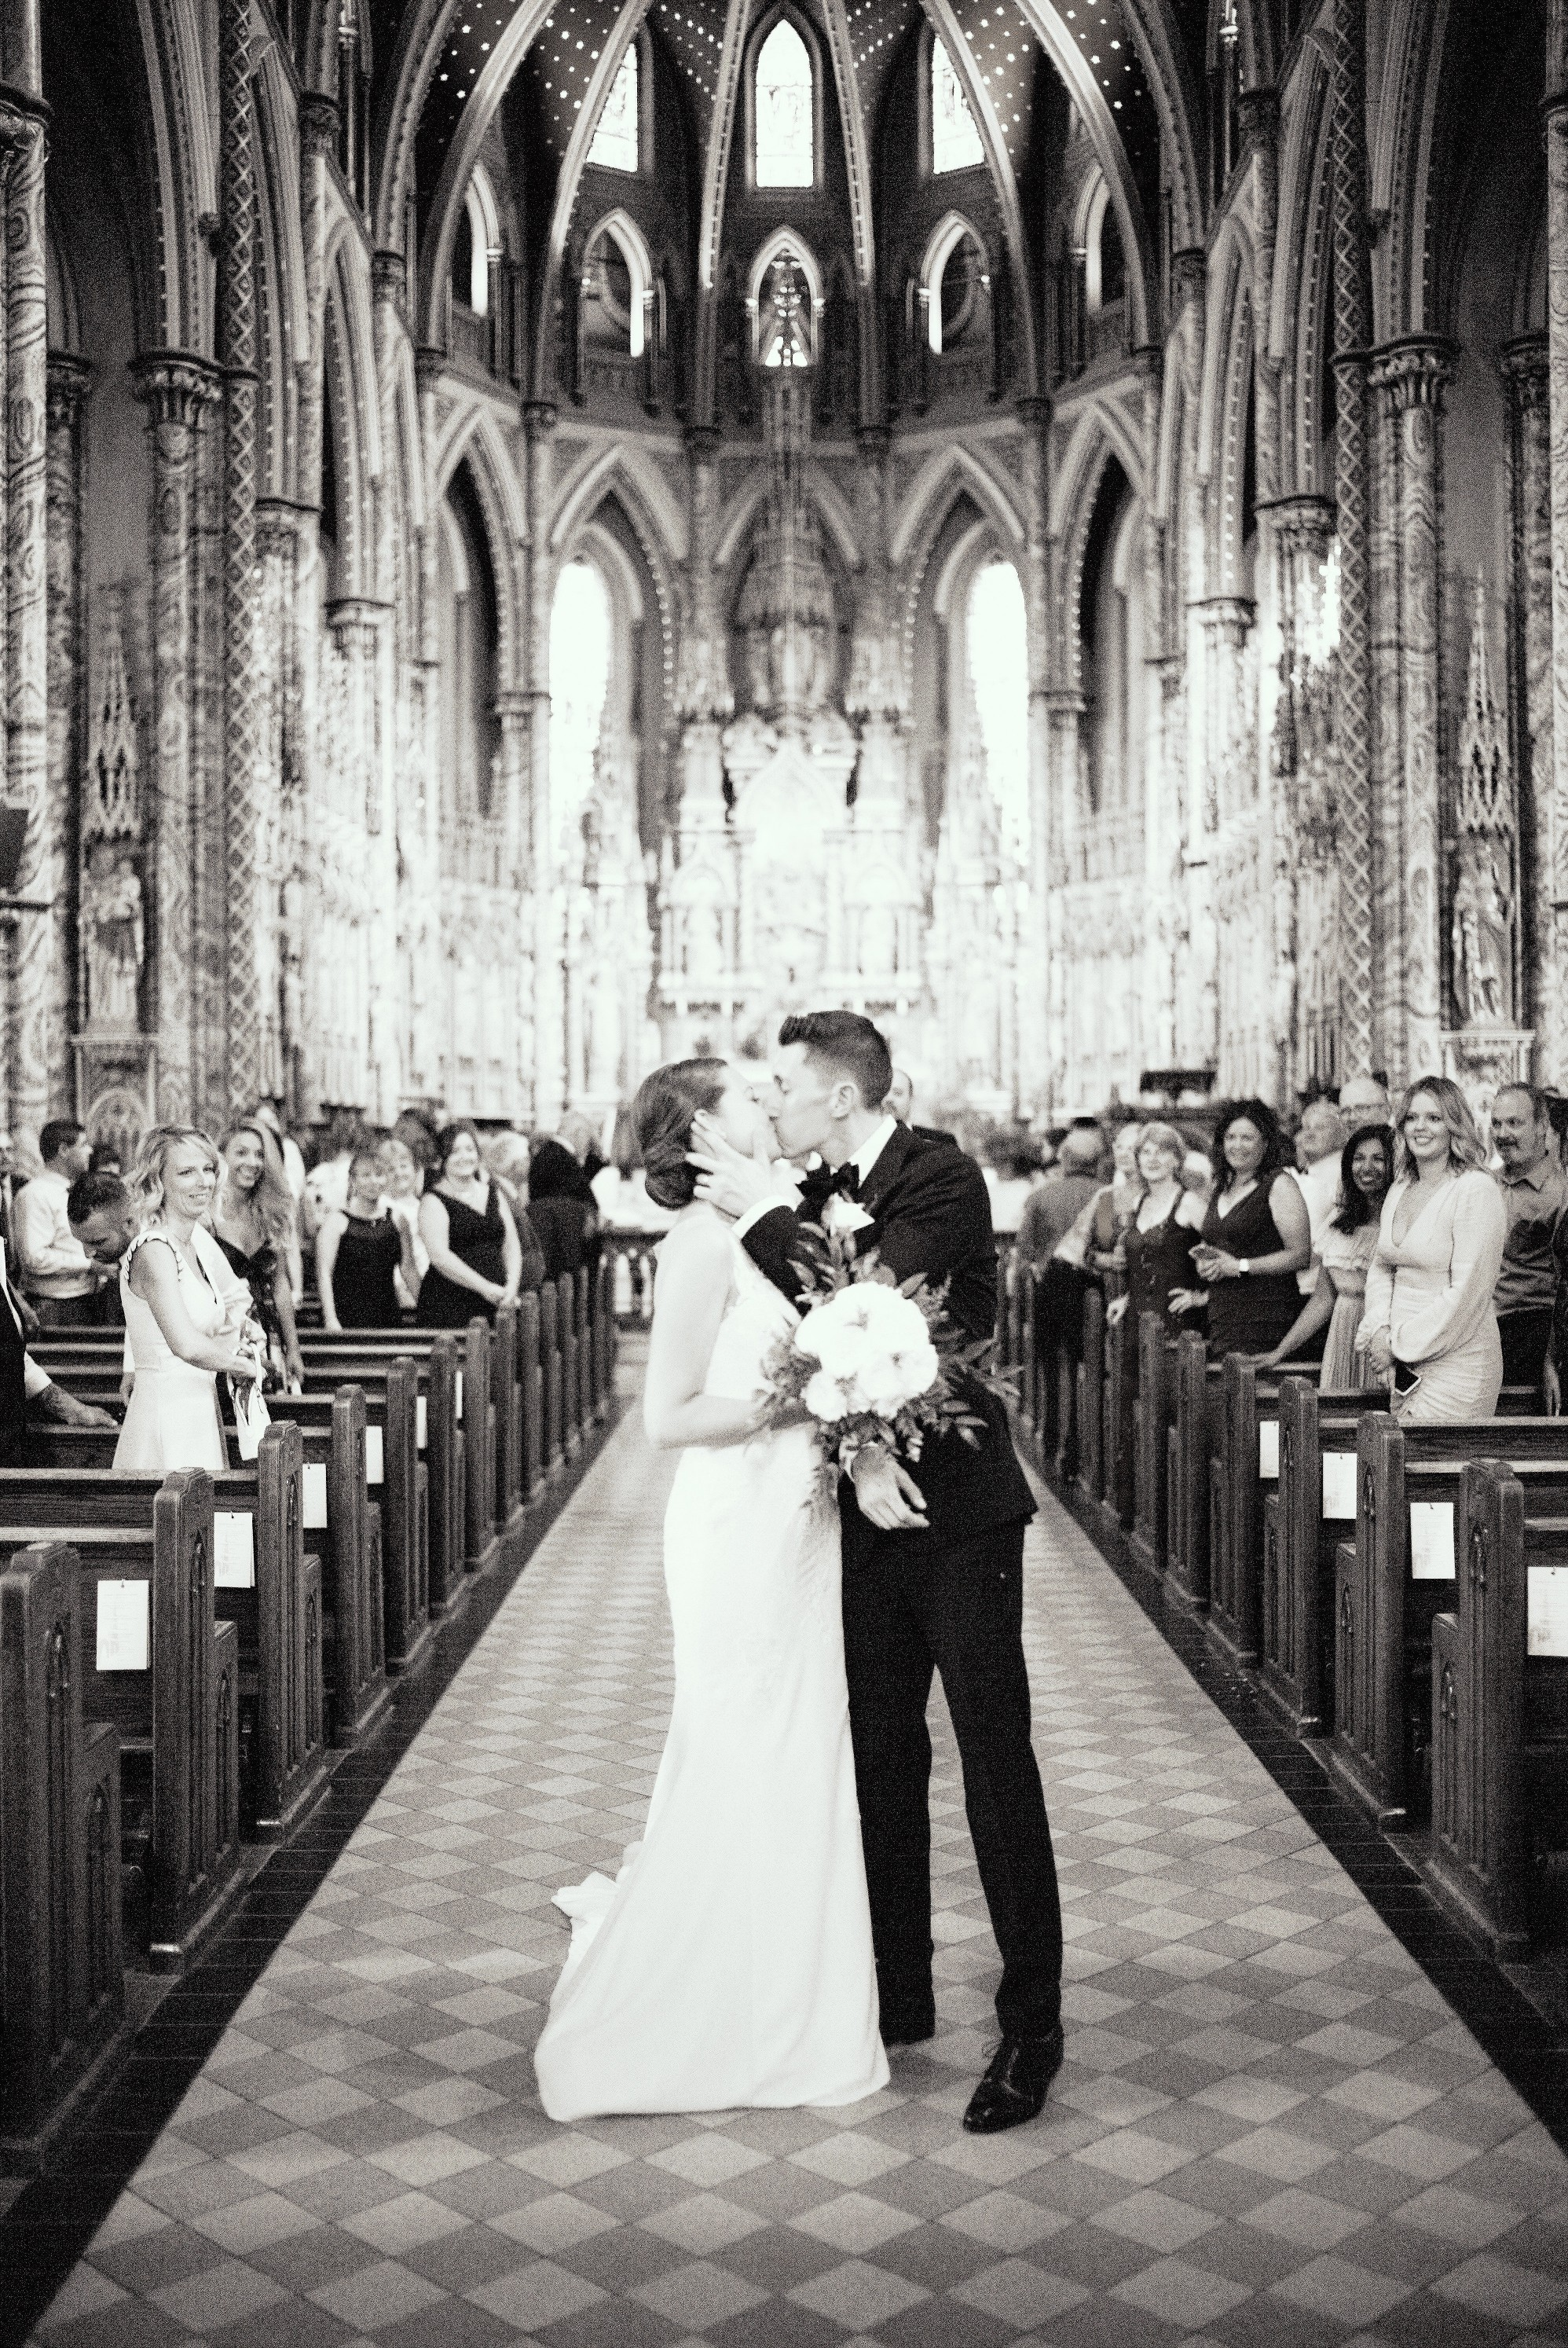 mike lupine photography weddings (12).jpg